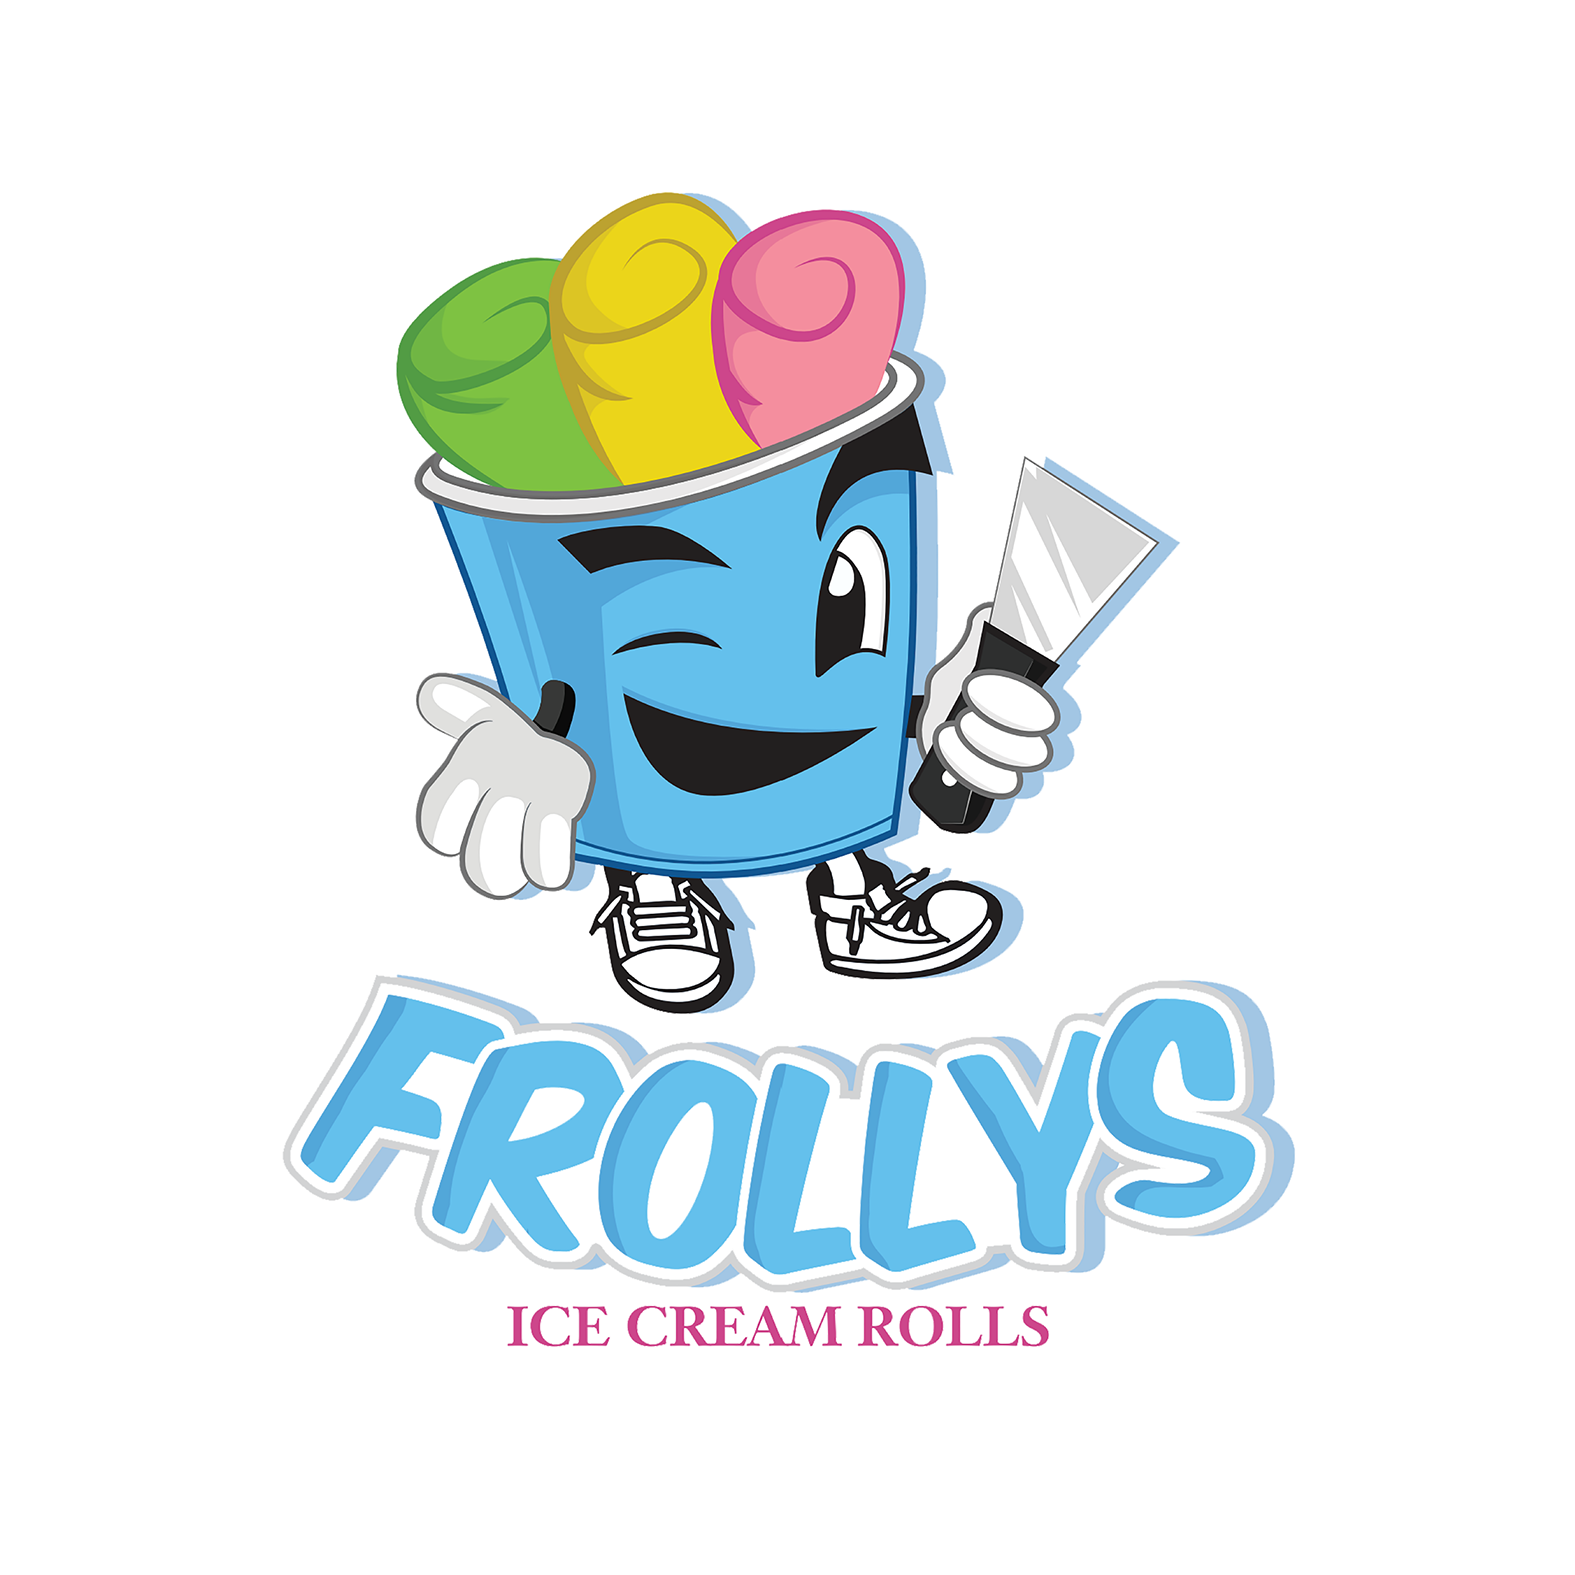 Frolly's